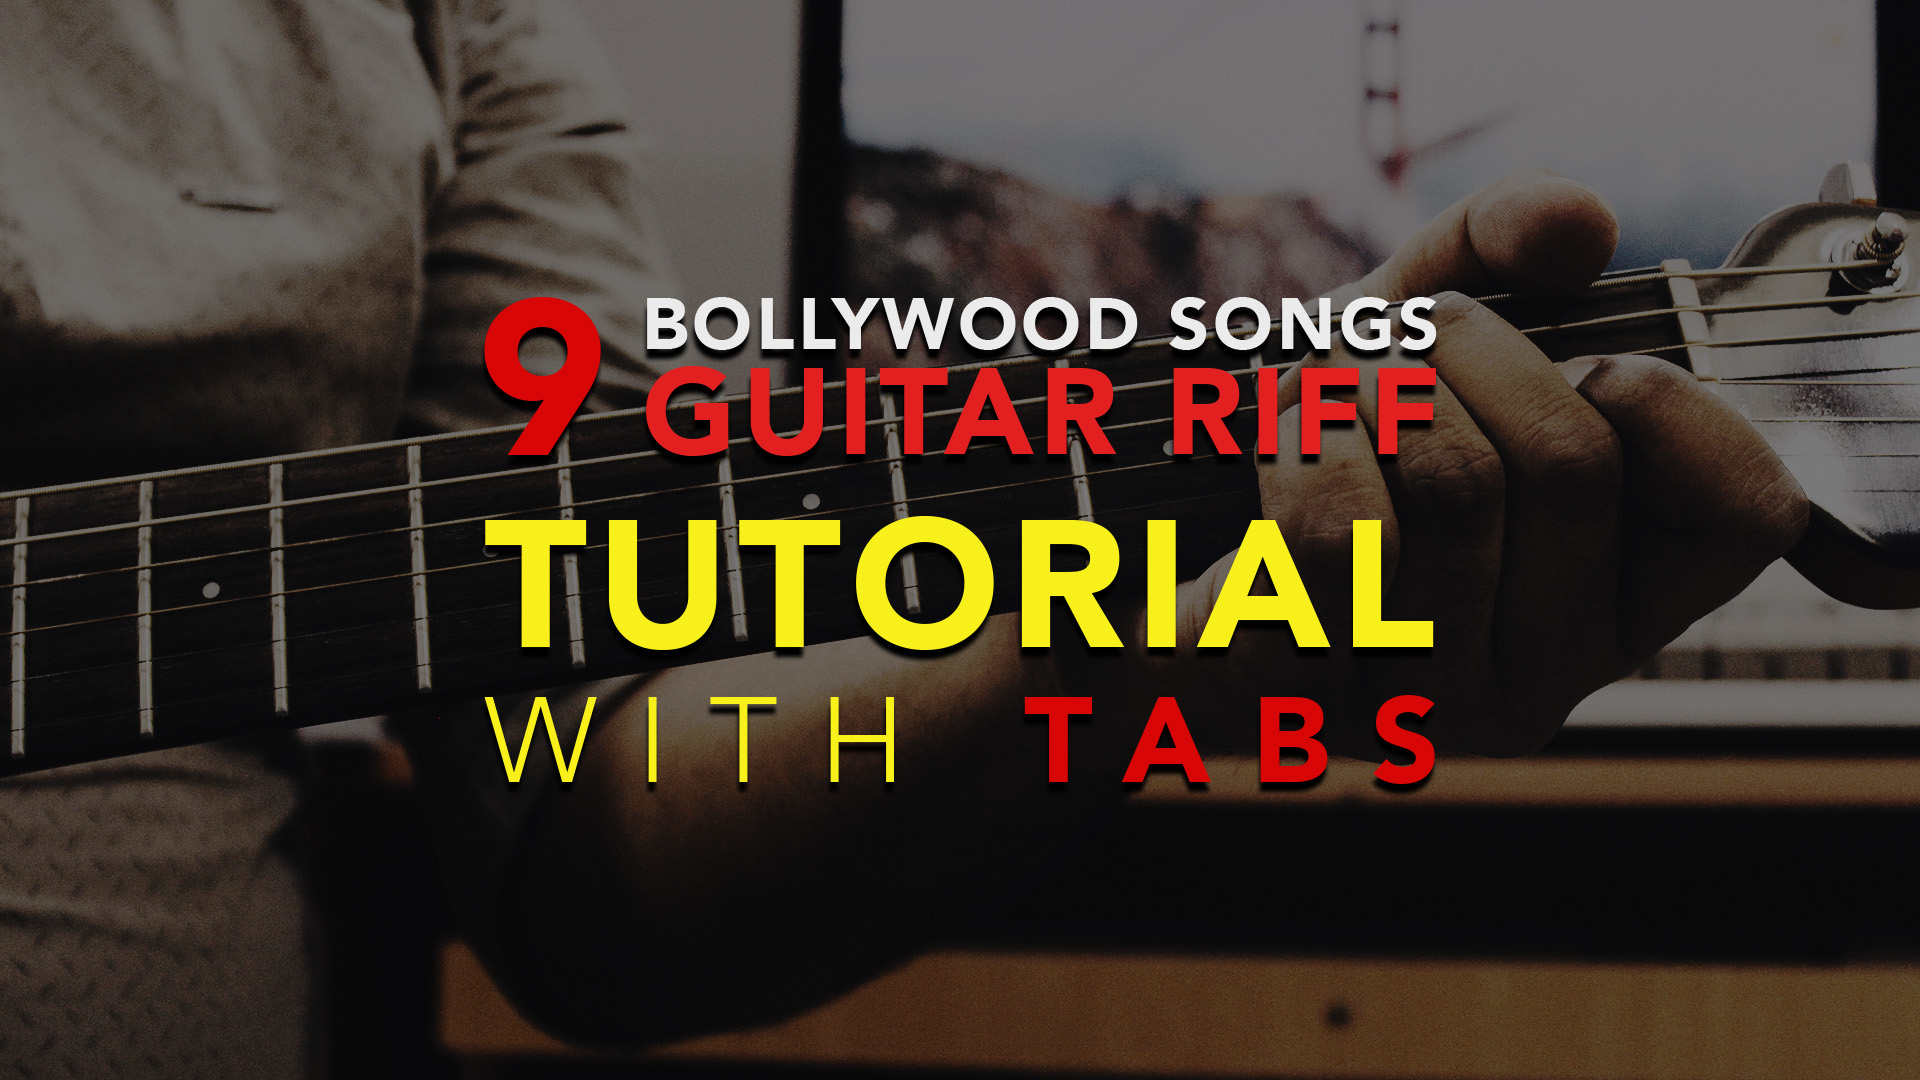 9 Iconic Hindi Bollywood Song Guitar Riffs Tutorial With Free Tabs